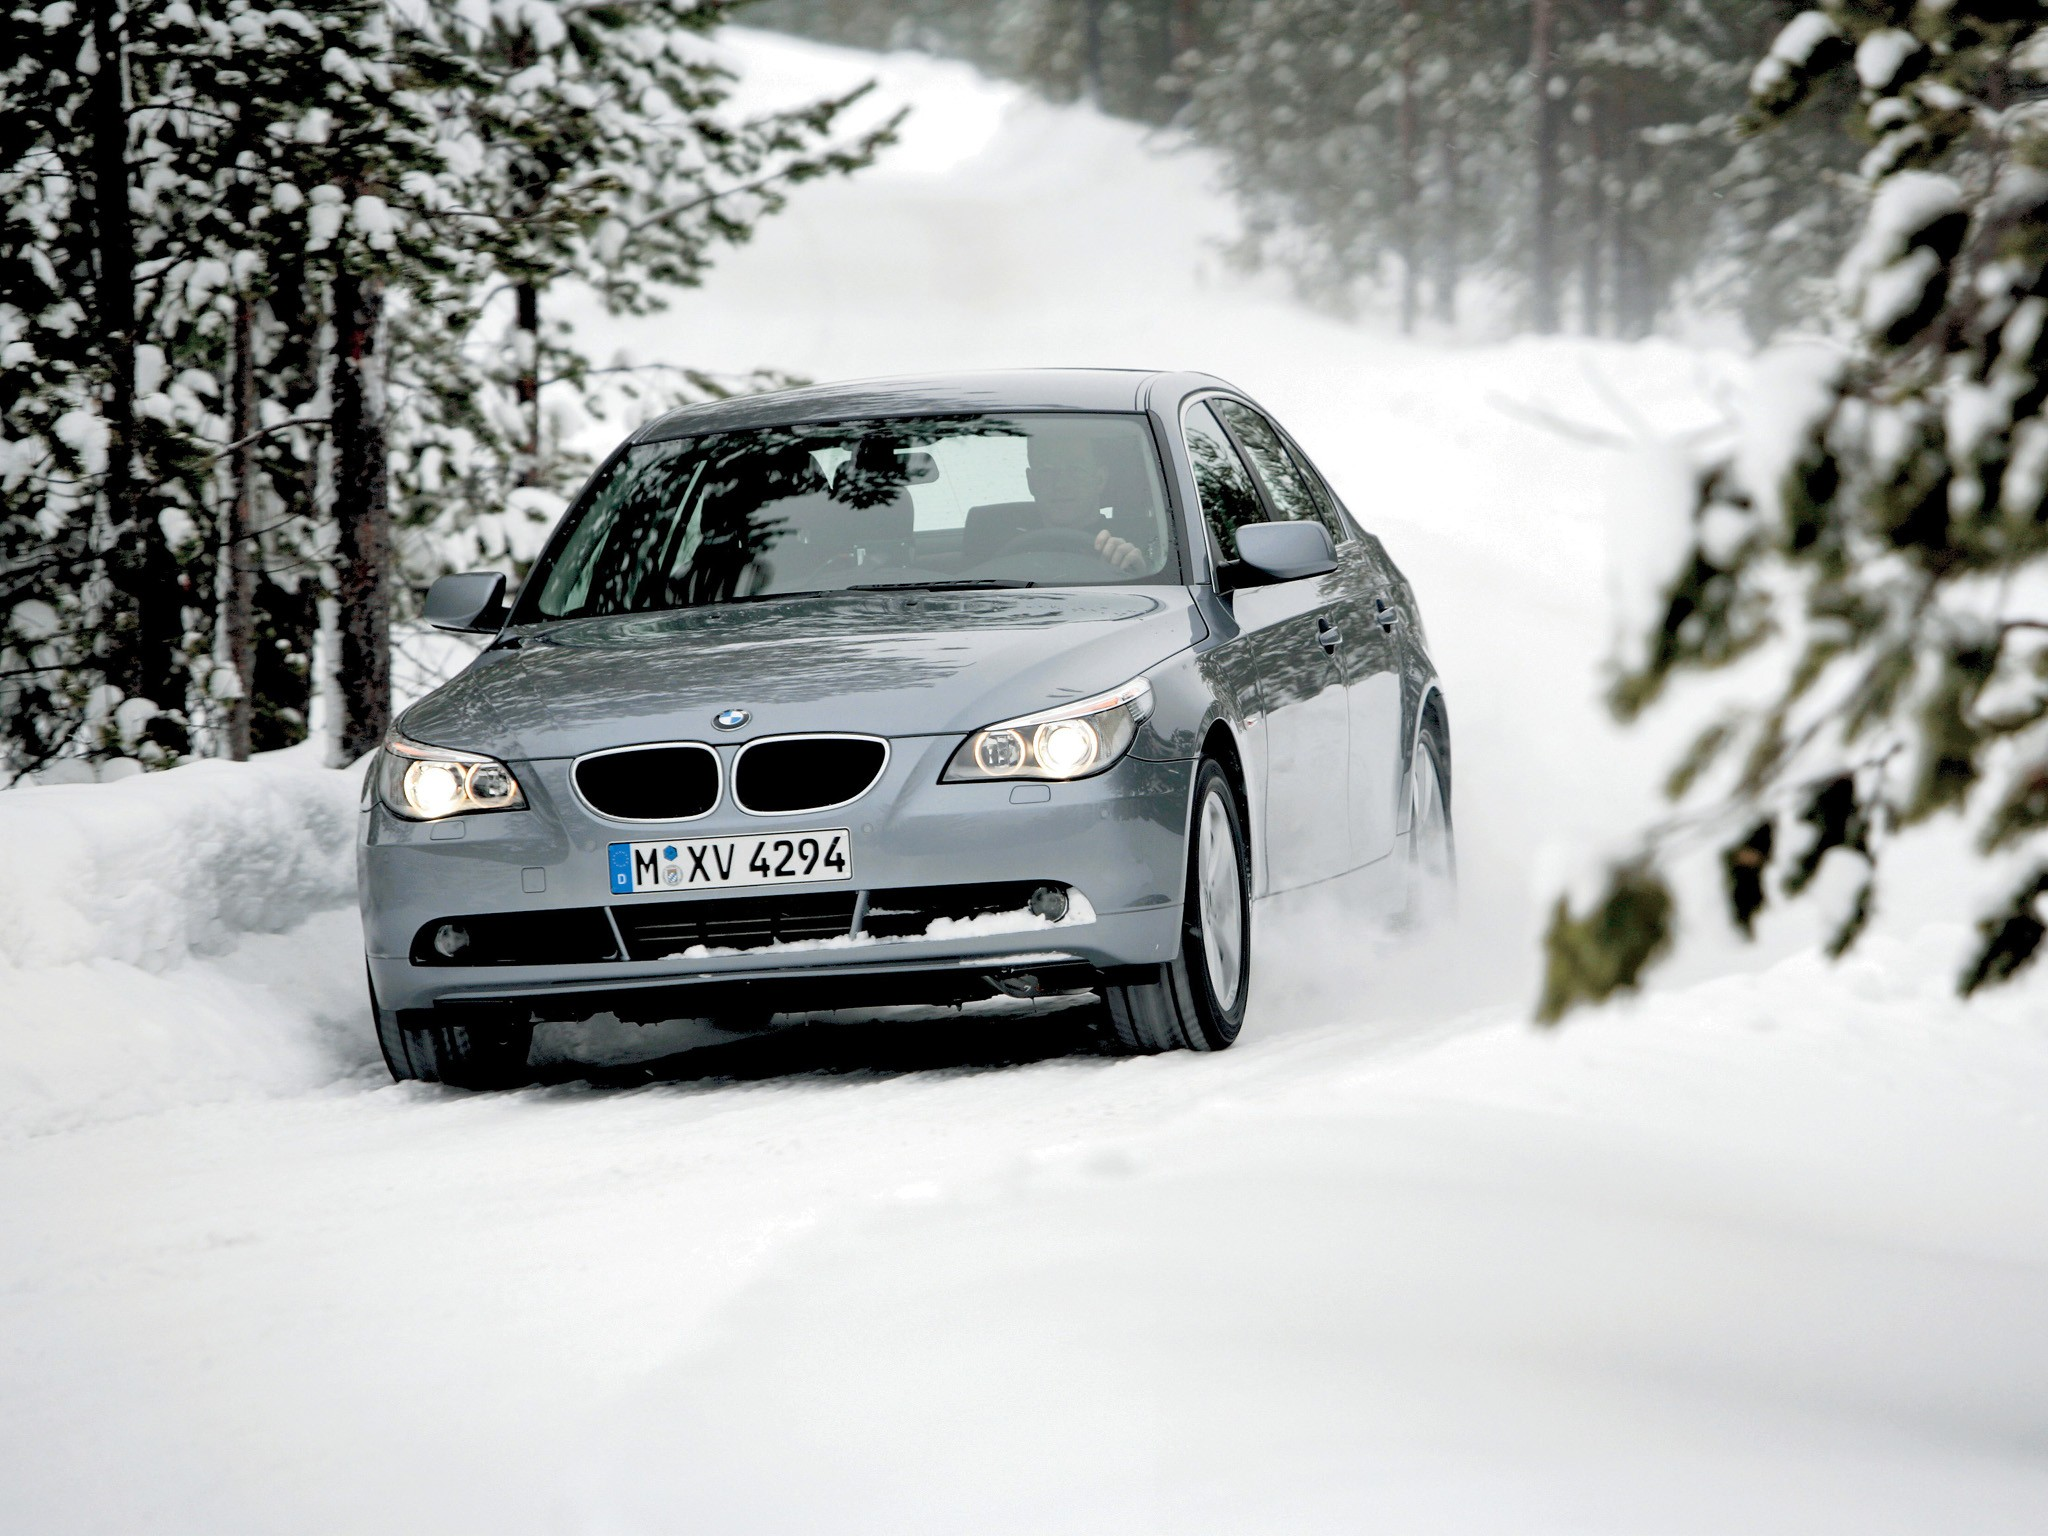 BMW 5 series 530xd 2007 photo - 2